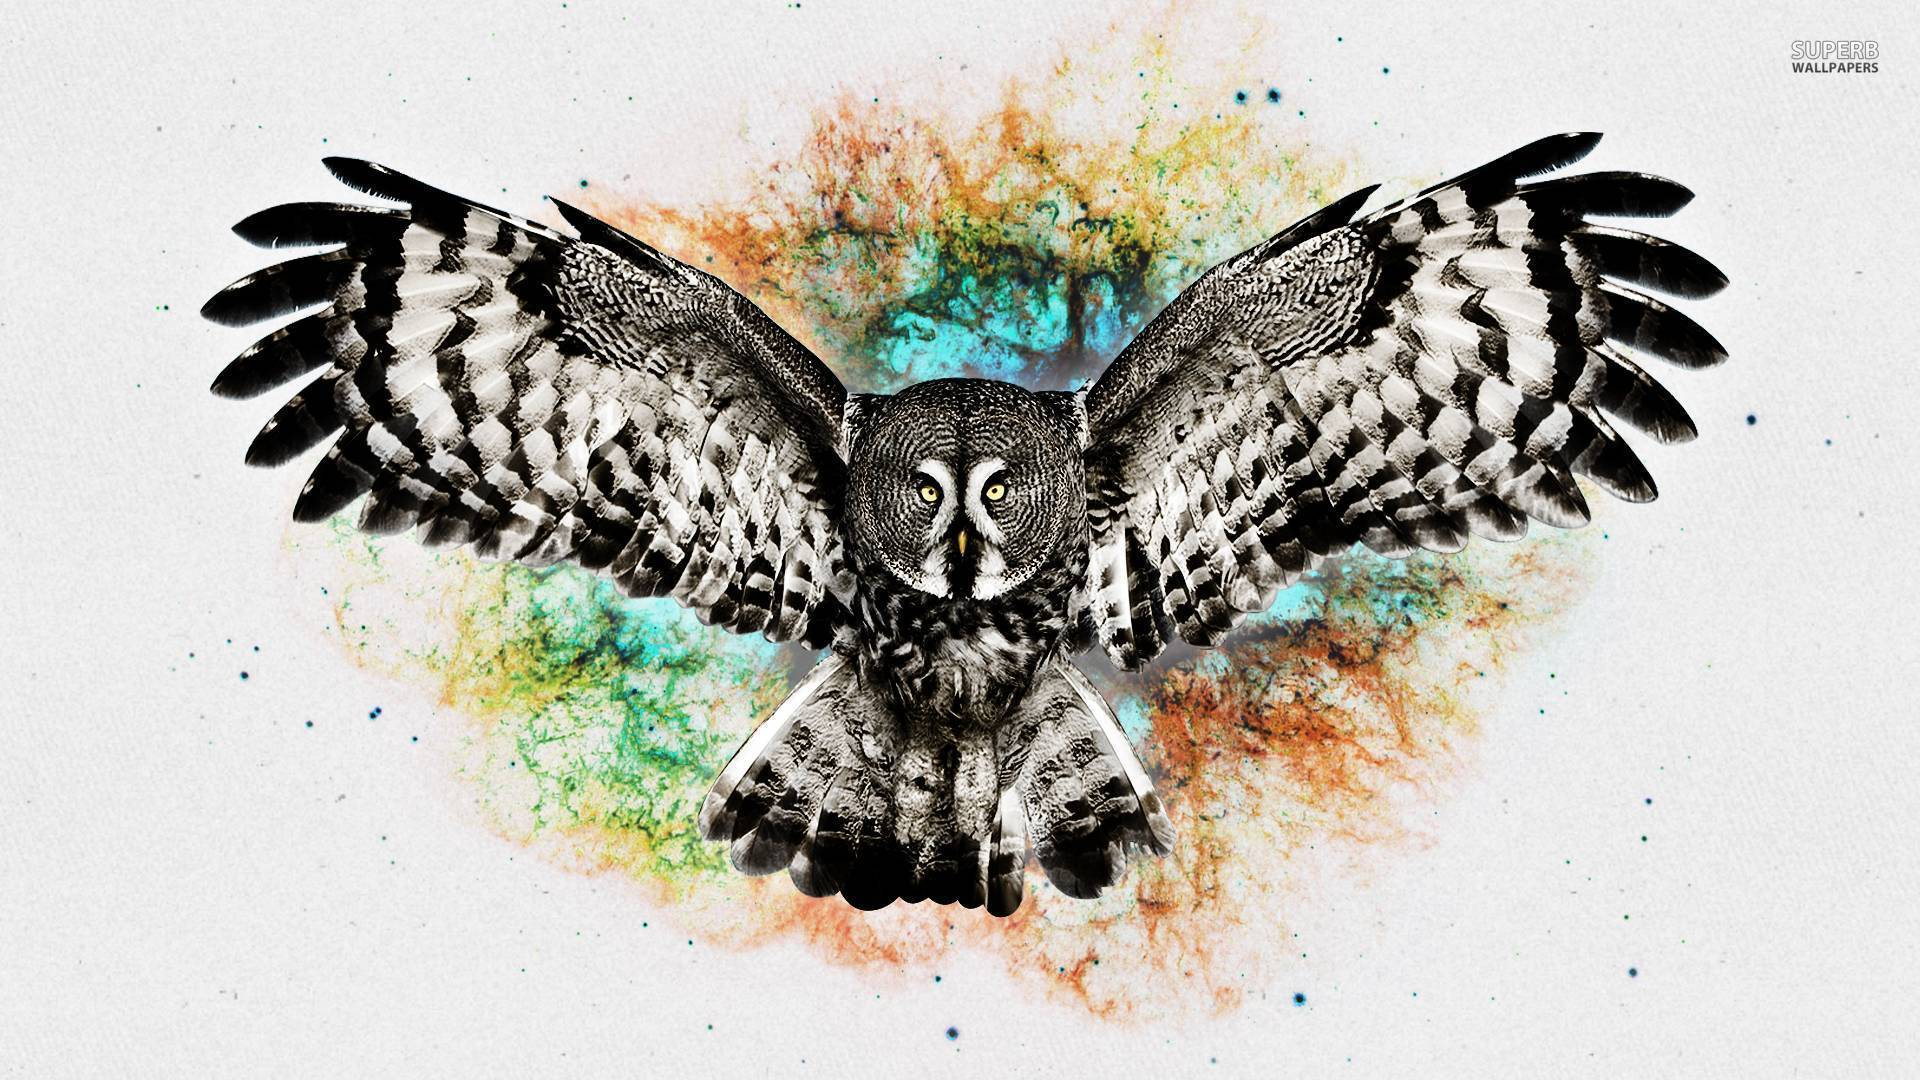 Owl wallpaper - Digital Art wallpapers - #